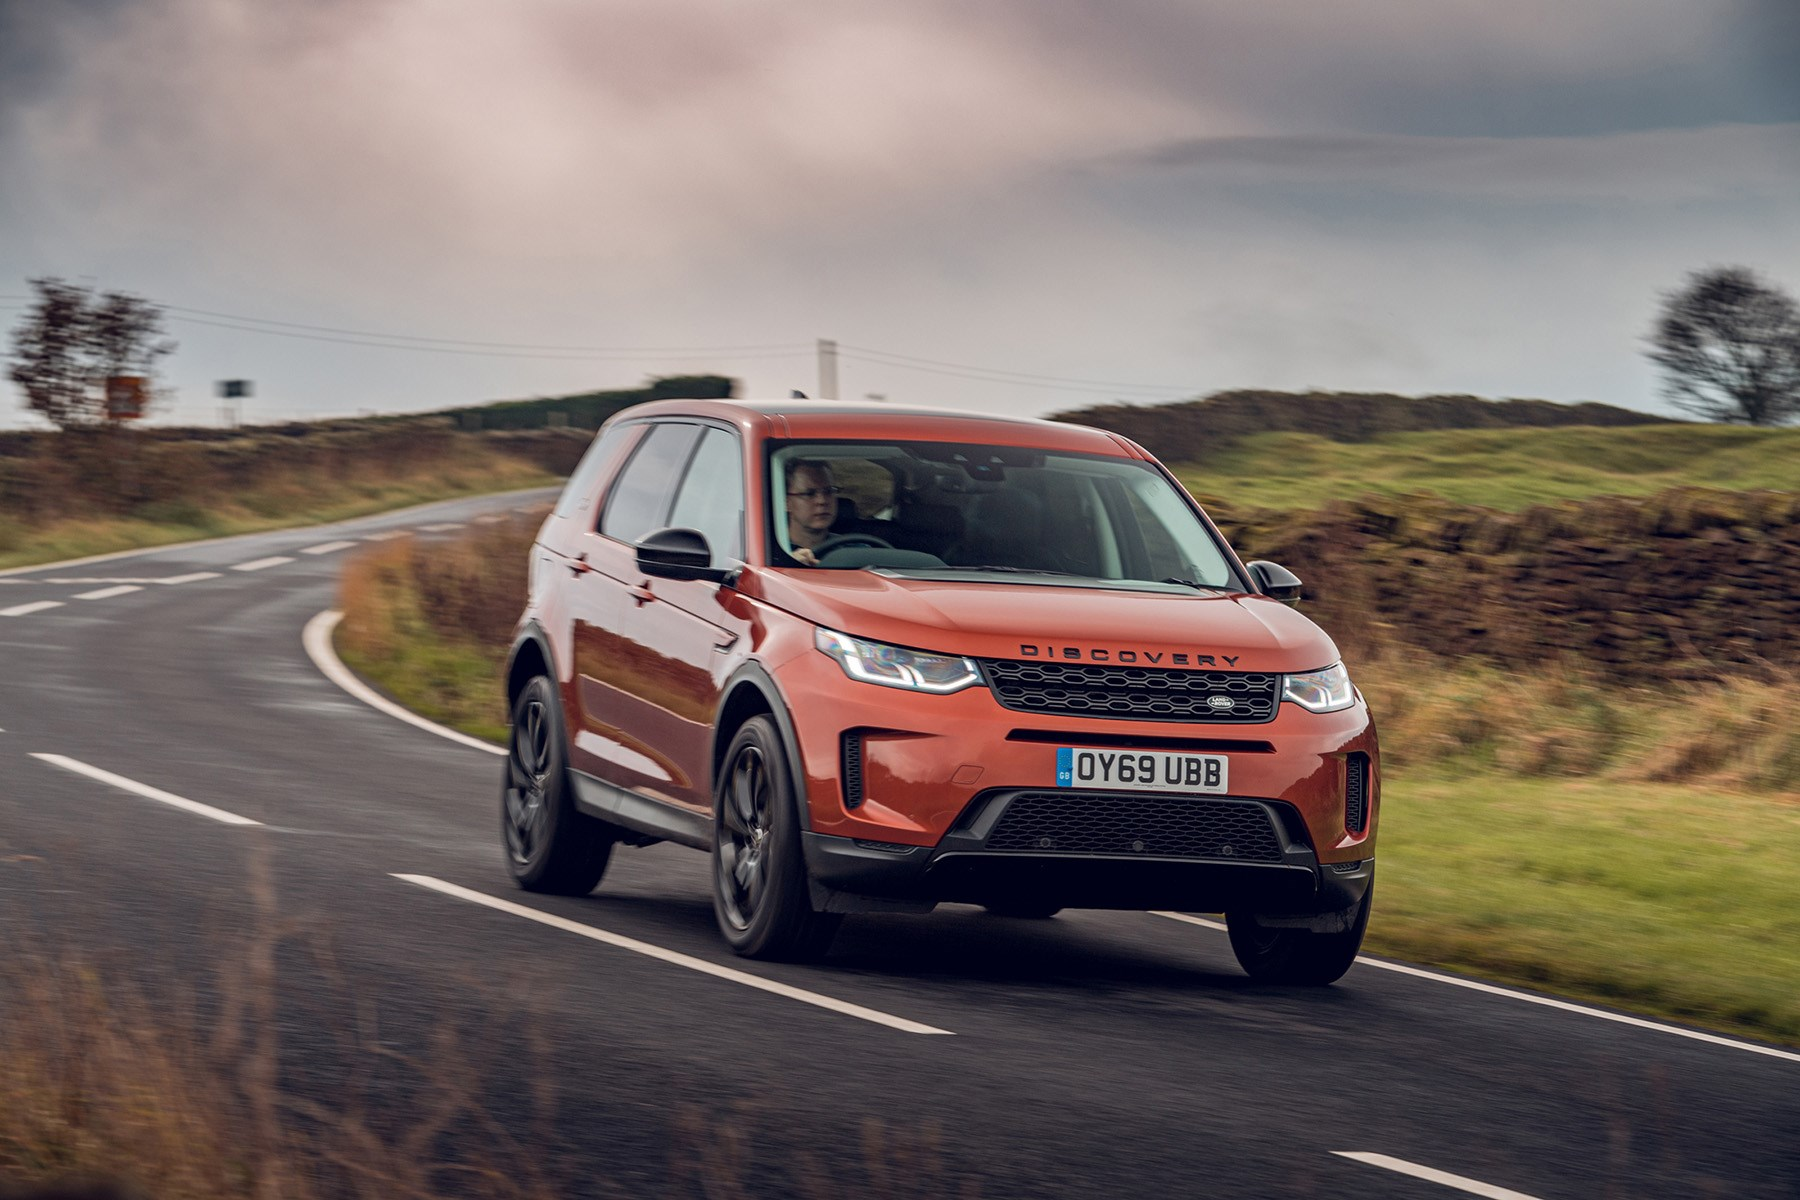 2019 Land Rover Discovery Sport handling